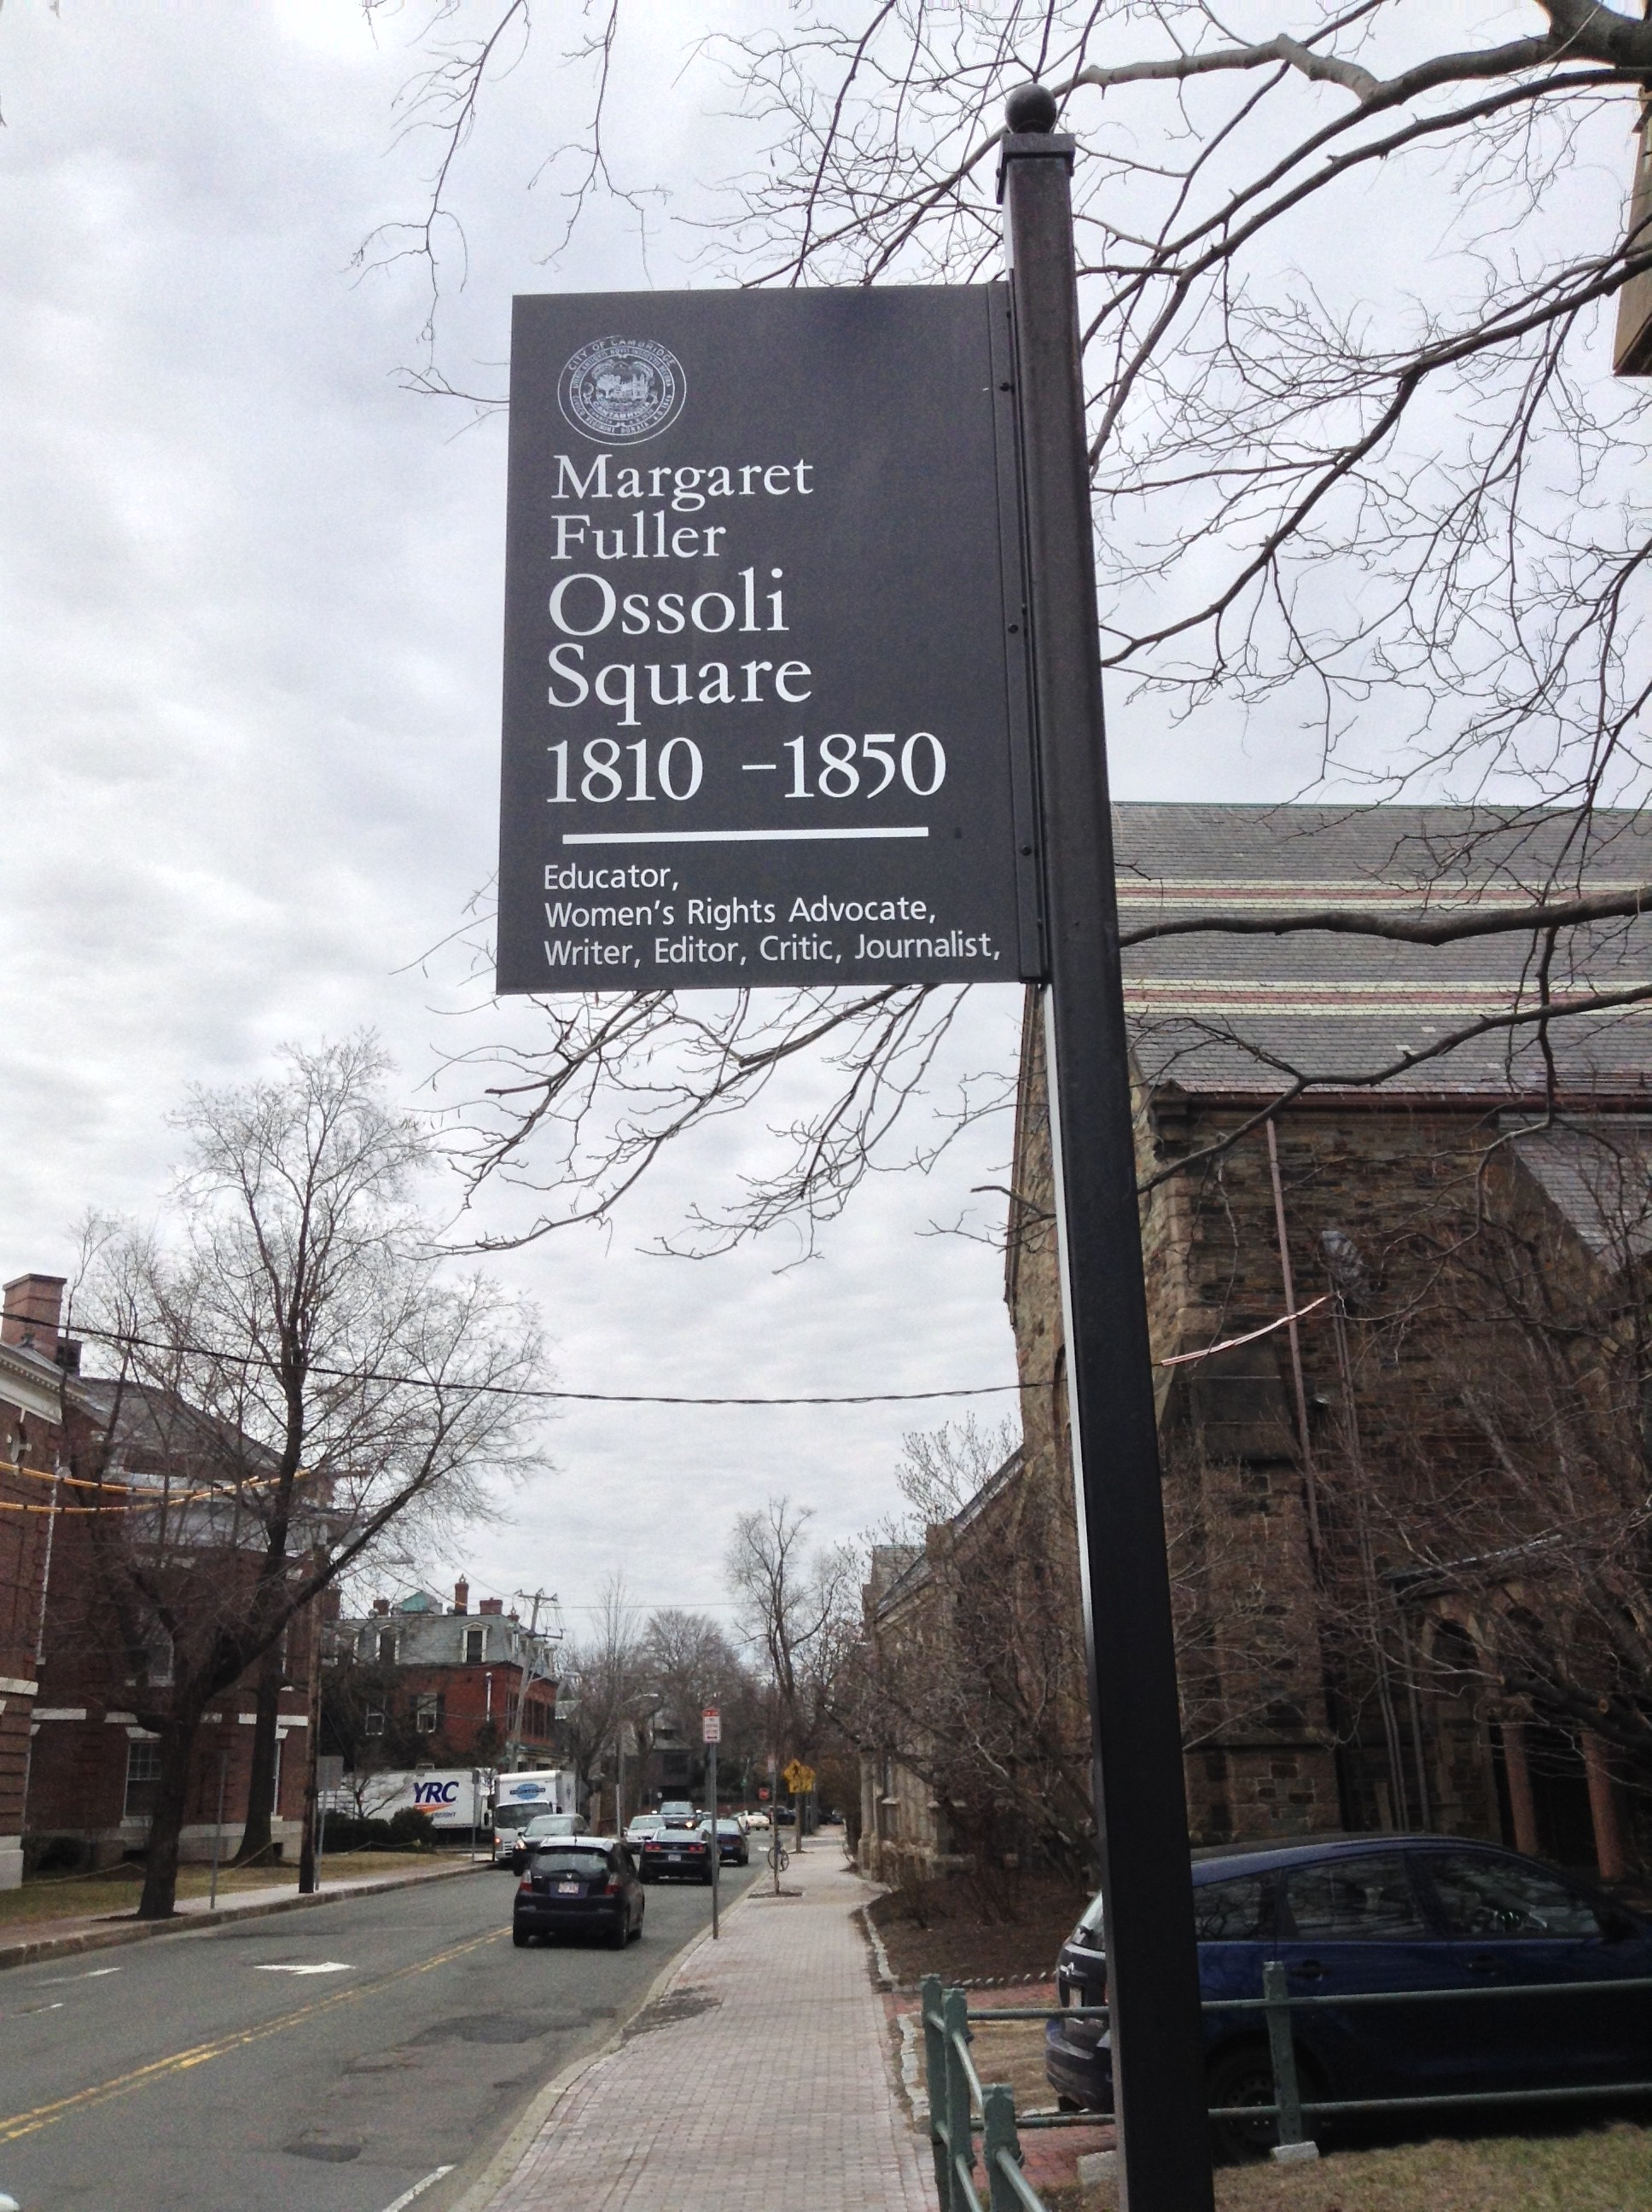 Margaret Fuller Ossoli Square, Cambridge